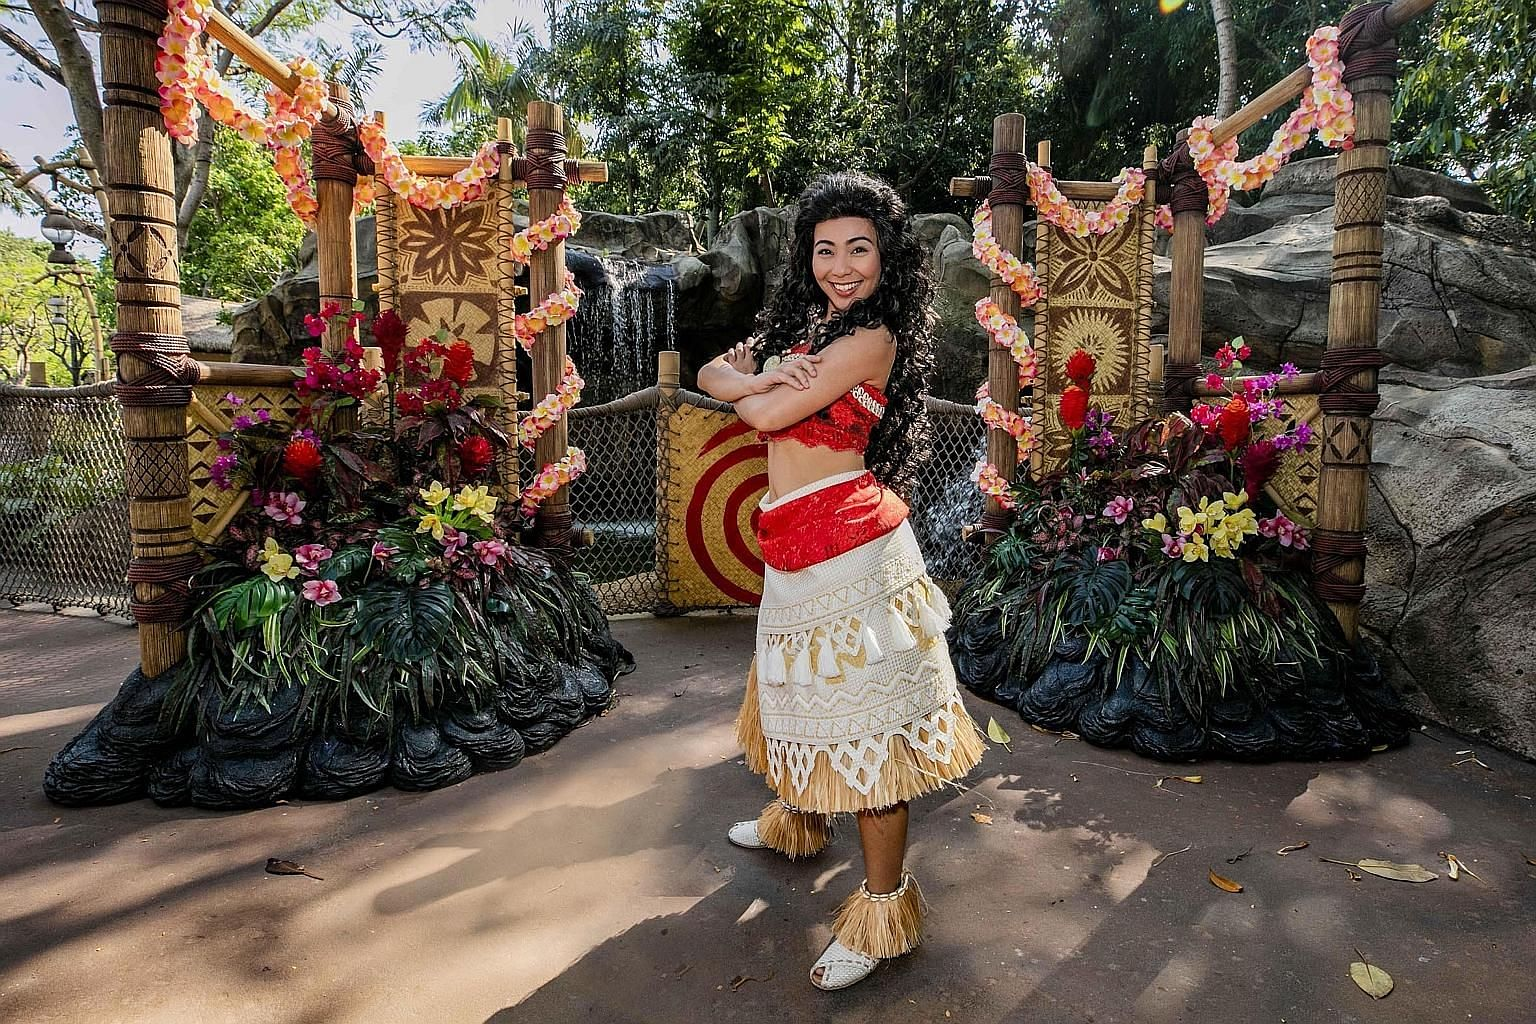 Meet Moana (above) and watch the buildings of Main Street, USA (left)transform into a canvas for visuals paying tribute to Mickey Mouse at Hong Kong Disneyland Resort.